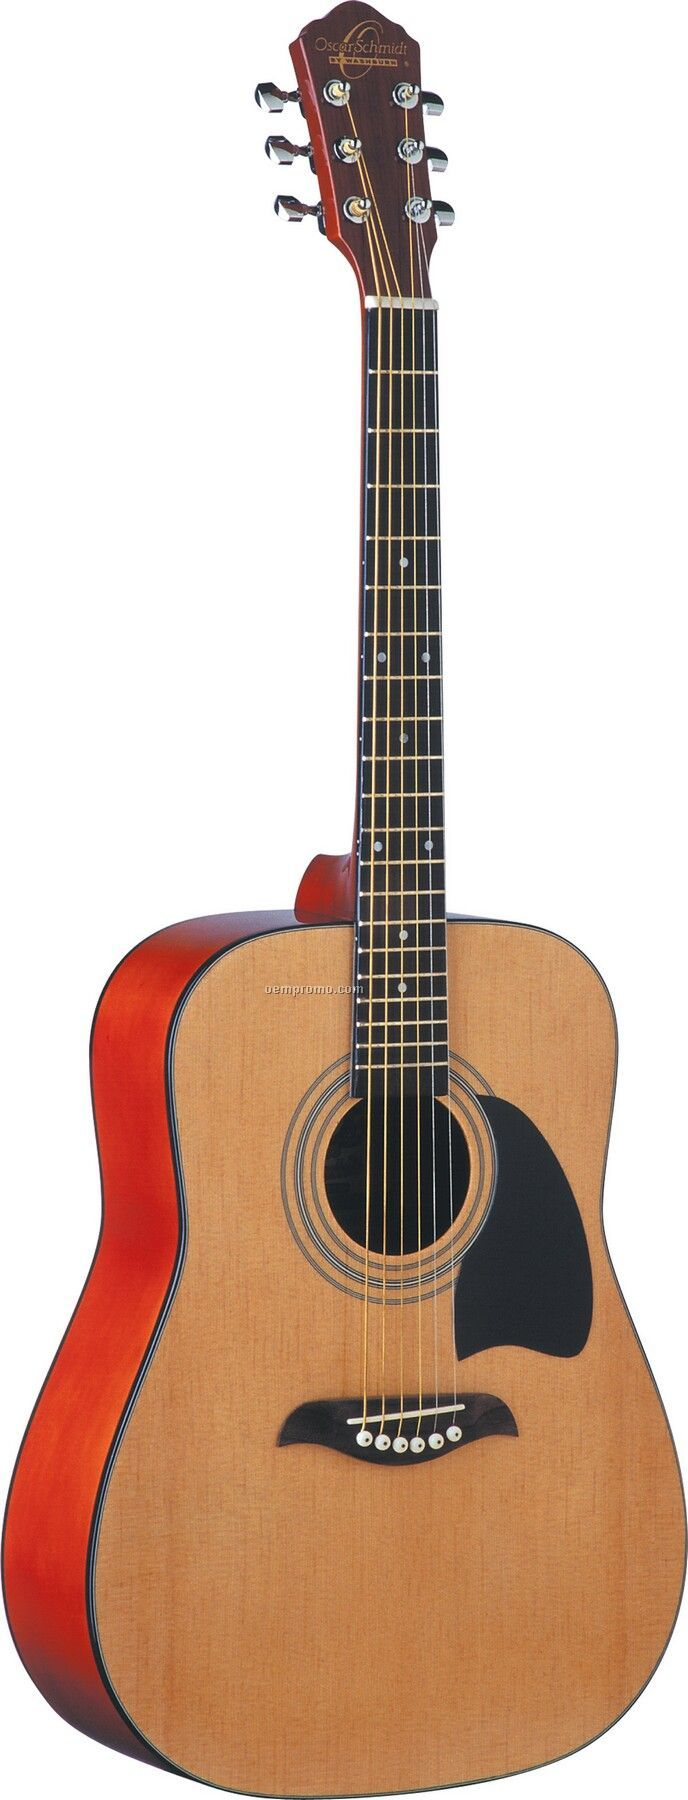 Electric Acoustic Guitar Folk Taylor 612e 2015 Es2 538866 likewise Peavey 6505 Mh 3614180 further 1566821 Oscar Schmidt Dreadnought Style Acoustic Guitar Trans Blue W Hard Case Og2tbl besides 1553495 Oscar Schmidt Acoustic Elecric Guitar W Hard Case Flame Yellow Sun Burst Og2cefys Case likewise 2317946 Oscar Schmidt By Washburn 3 4 Size Electric Guitar Tremelo Os 30 Bk. on oscar schmidt by washburn acoustic guitar